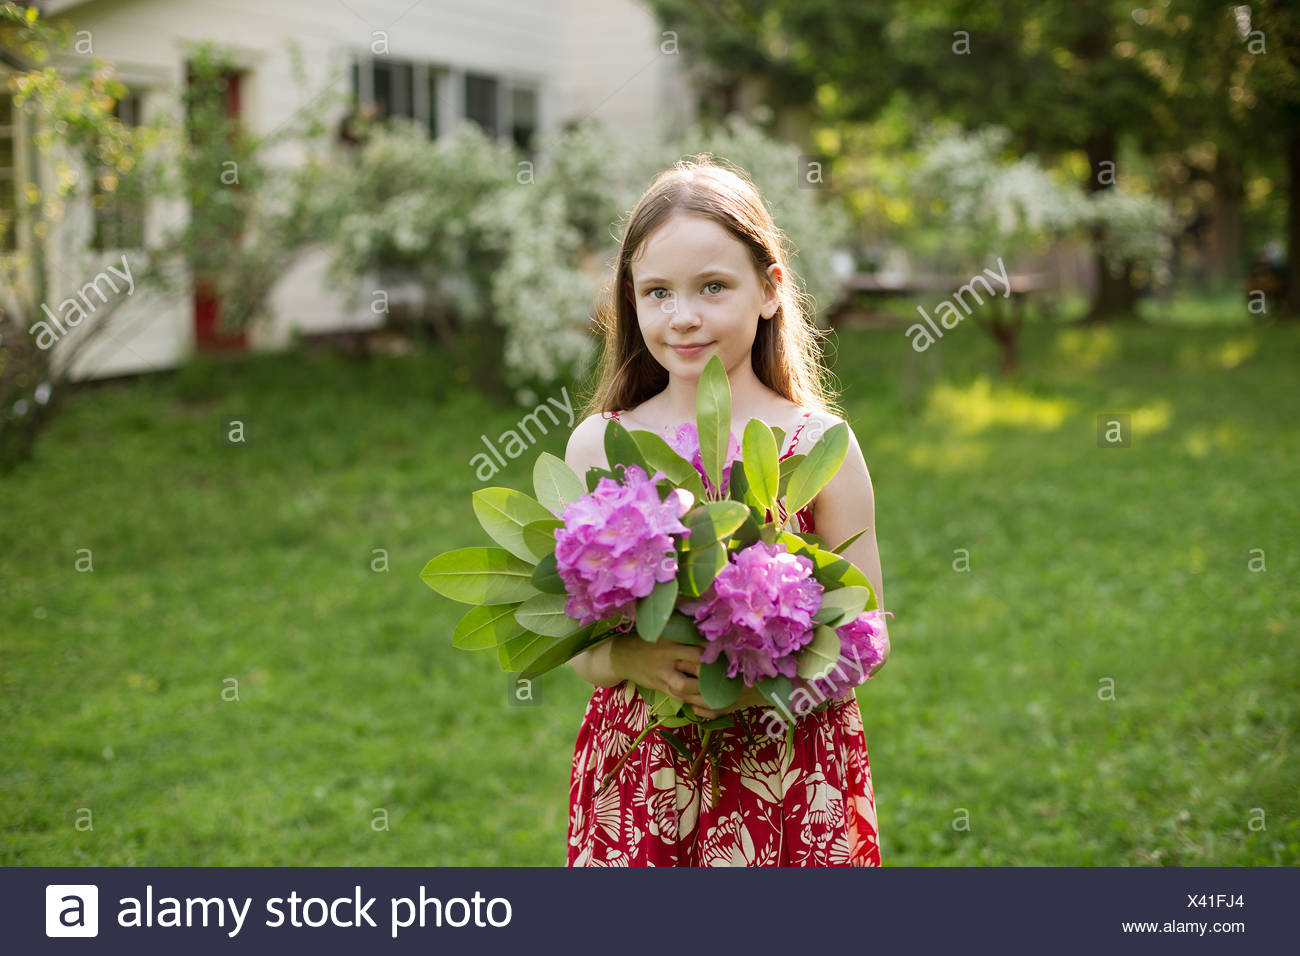 A young girl holding a bunch of purple hydrangea flowerheads. - Stock Image